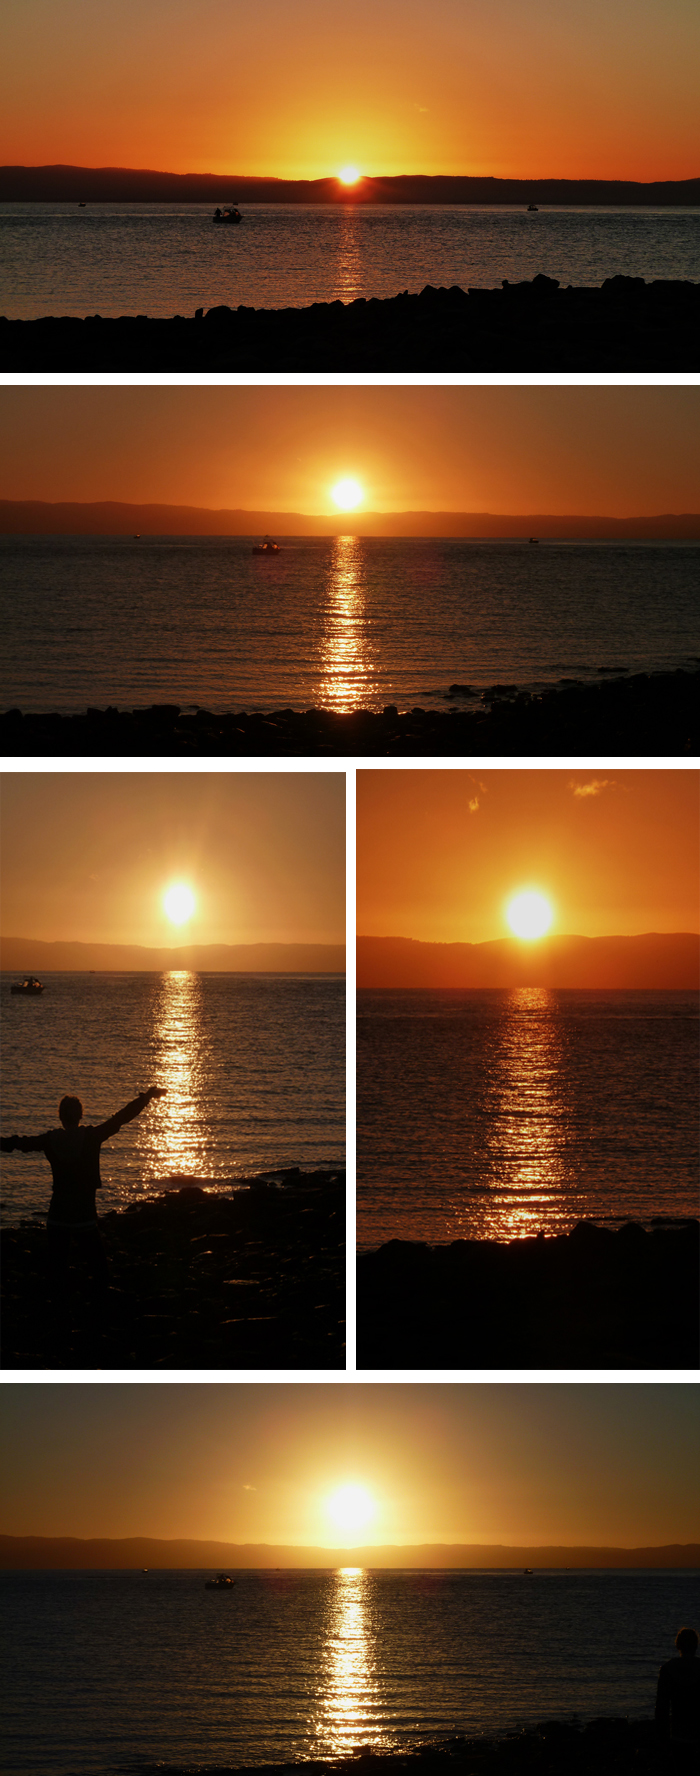 Sunrise at Point Lowly, Whyalla, SA